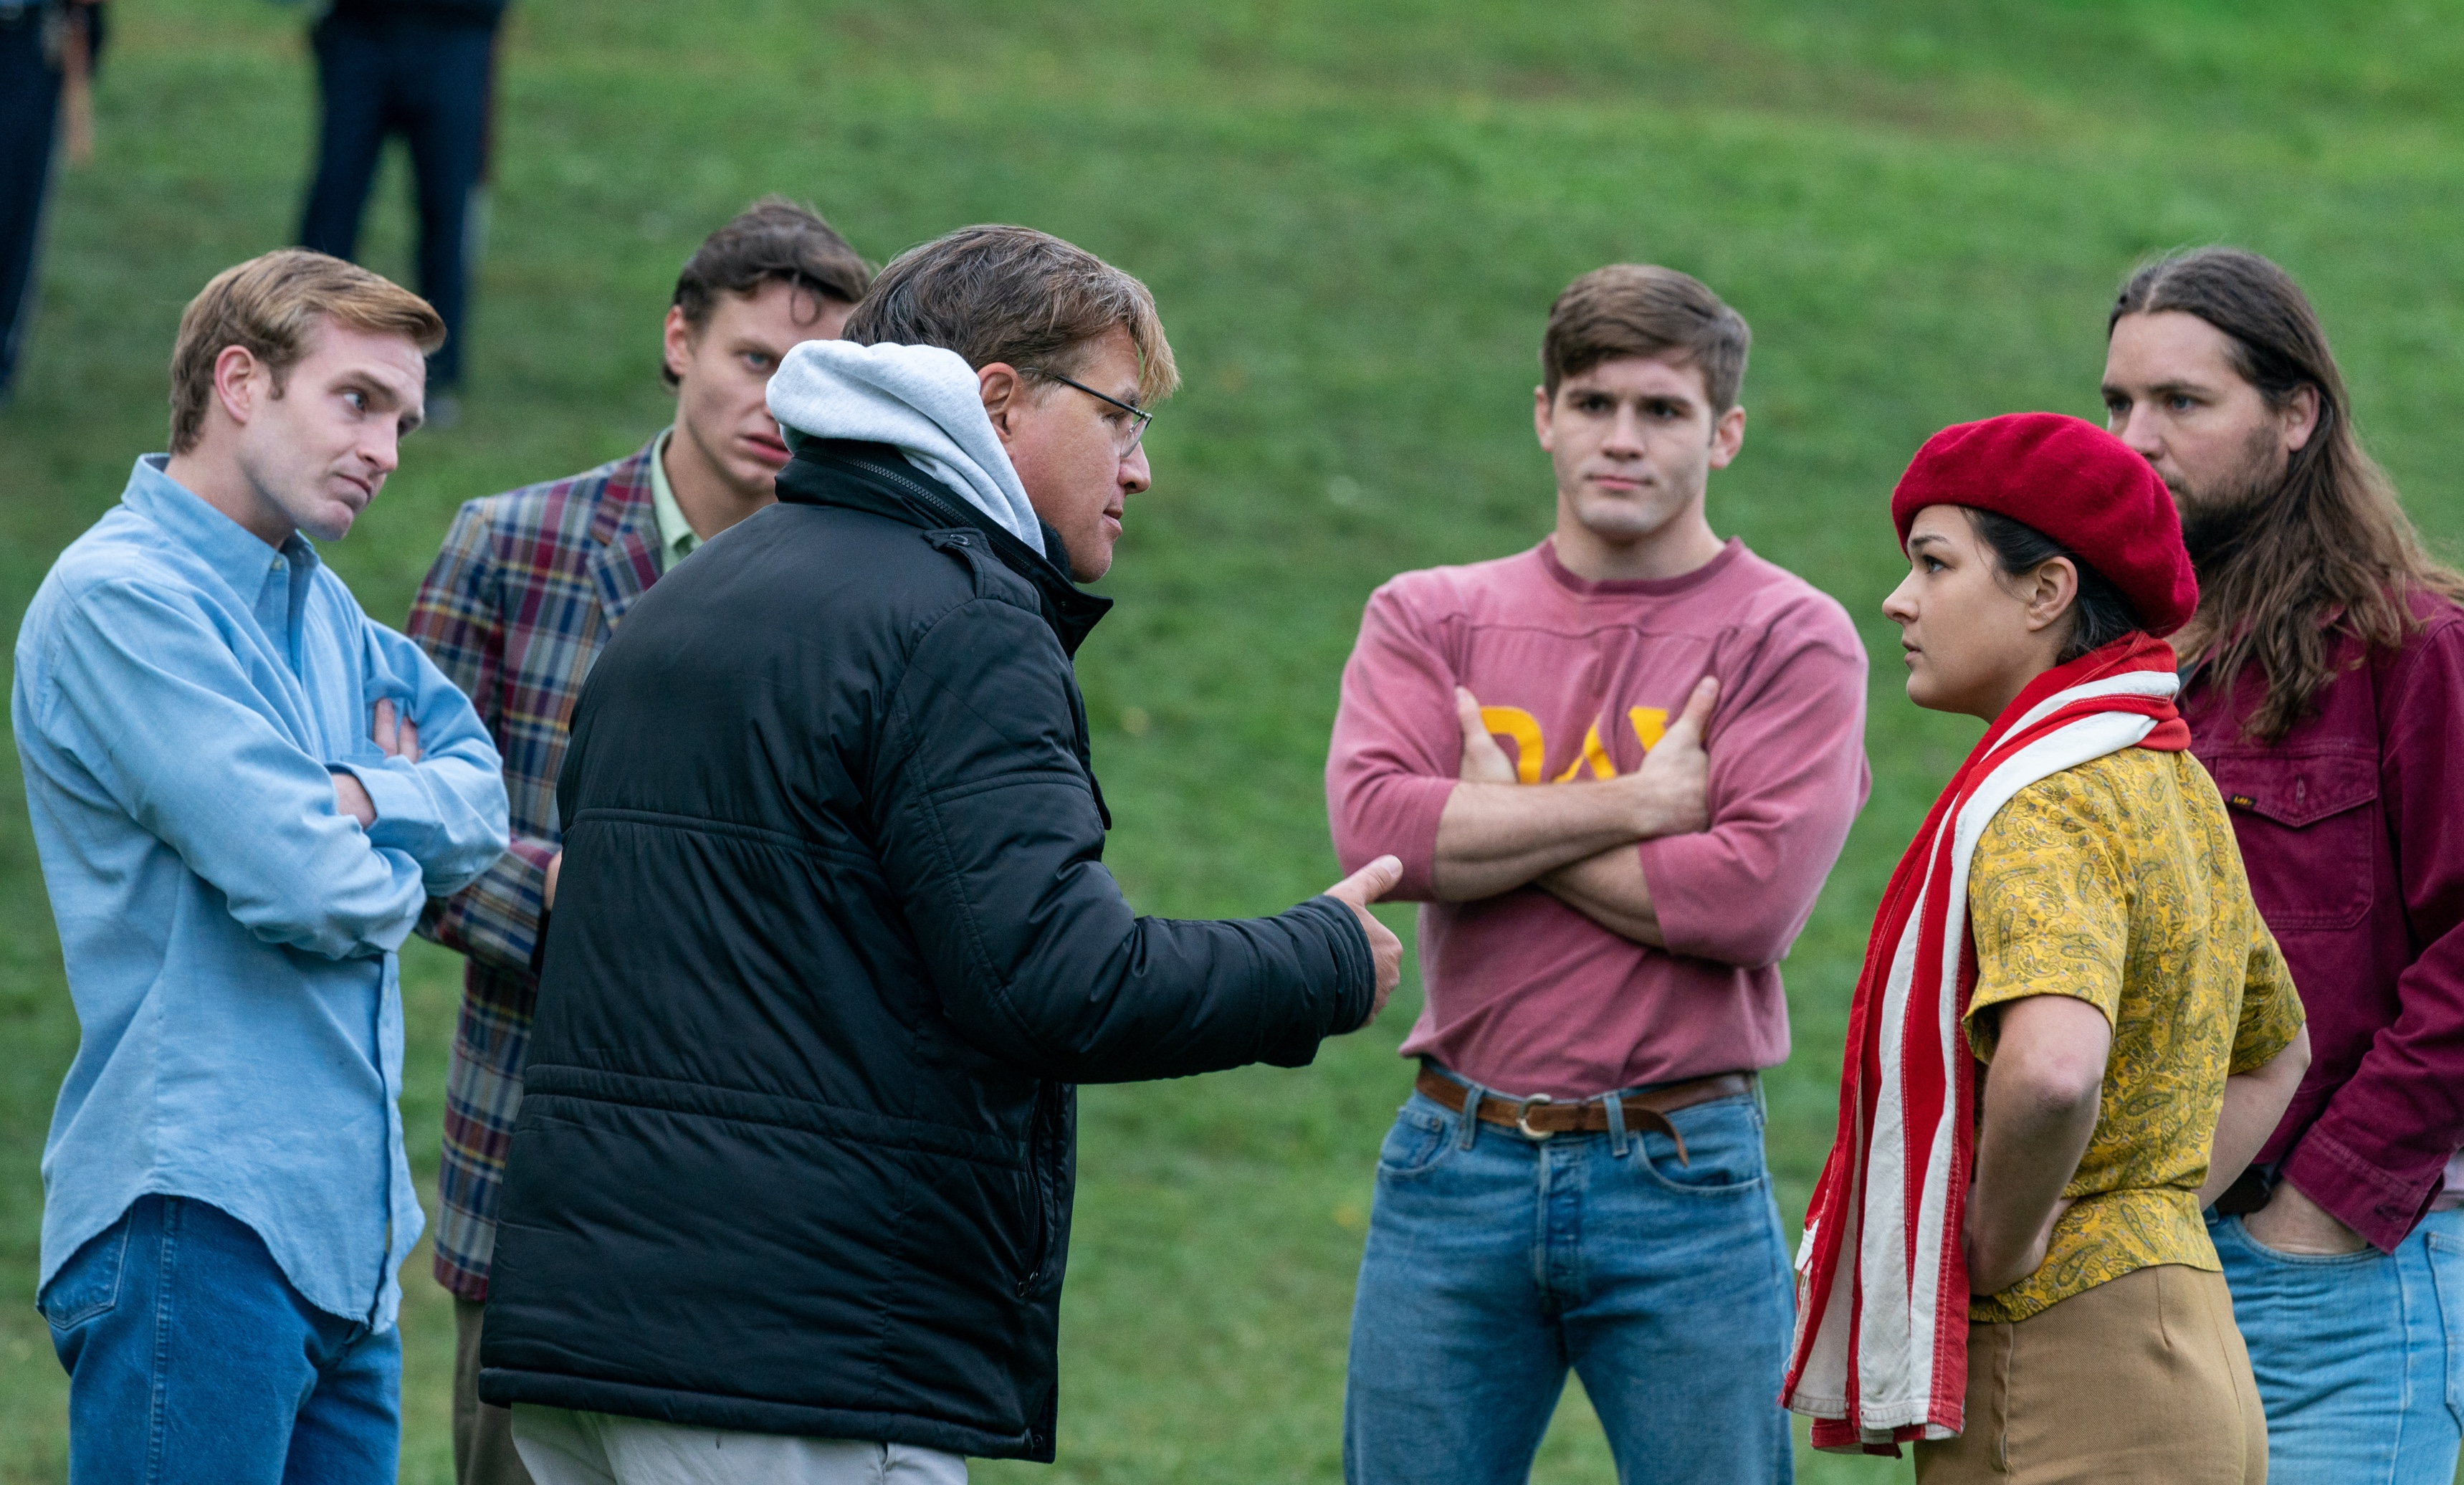 Extras circle around Aaron Sorkin as he prepares them for a protest scene in The Trial of the Chicago 7.